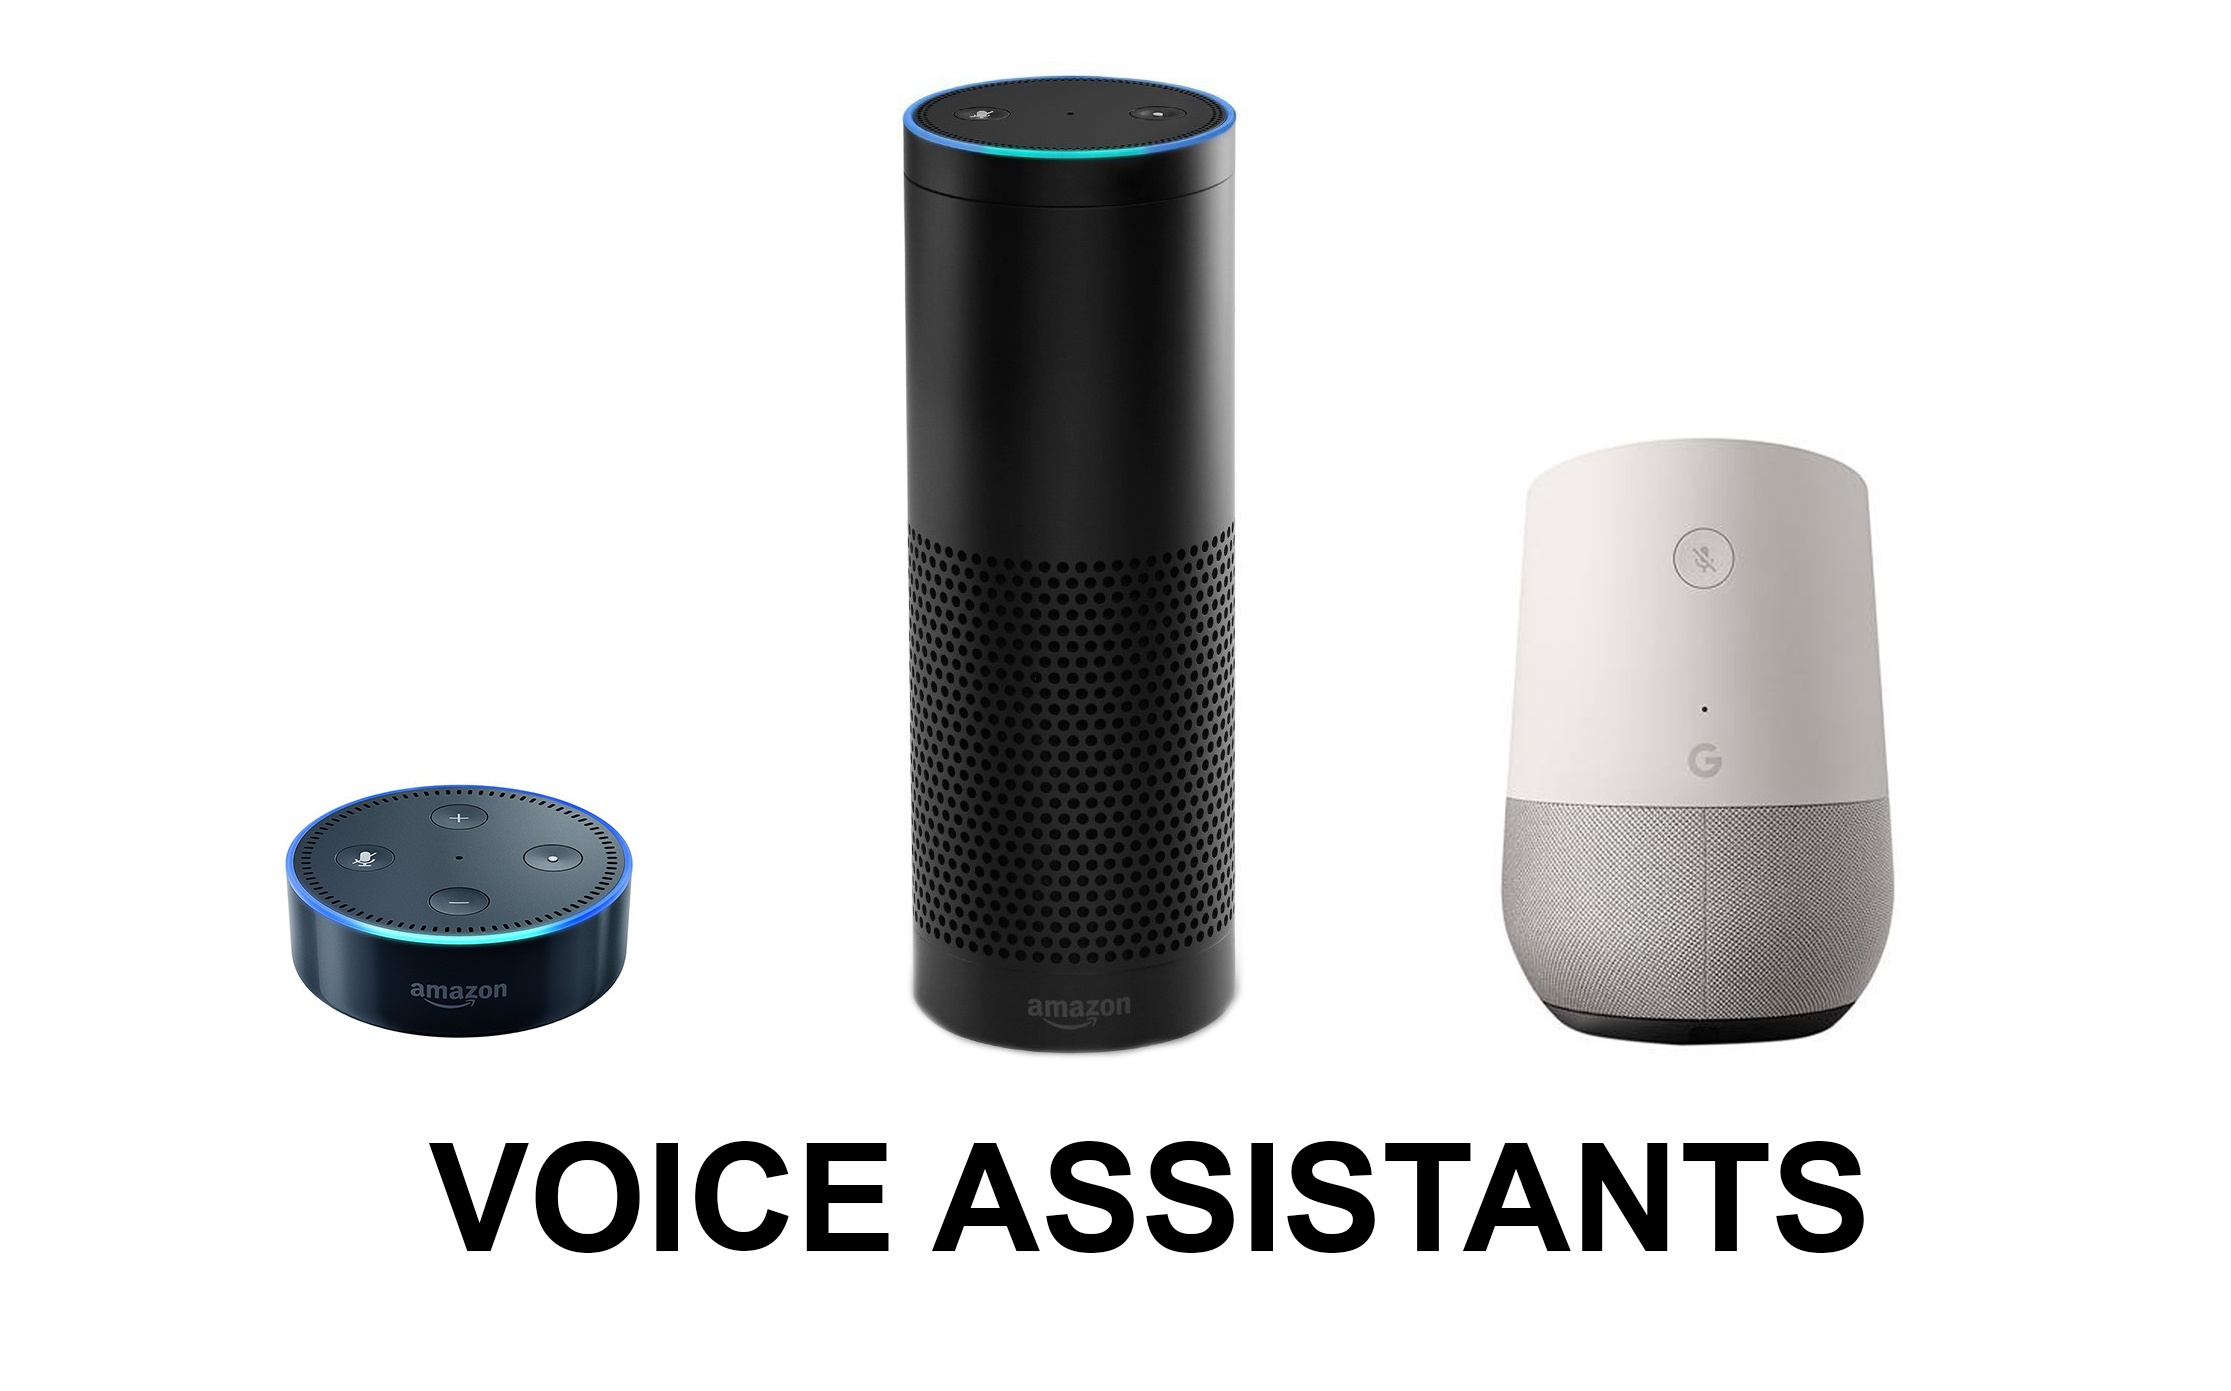 1 Voice Assistants Amazon Alexa Echo Echo Dot and Google Home Assistant.jpg